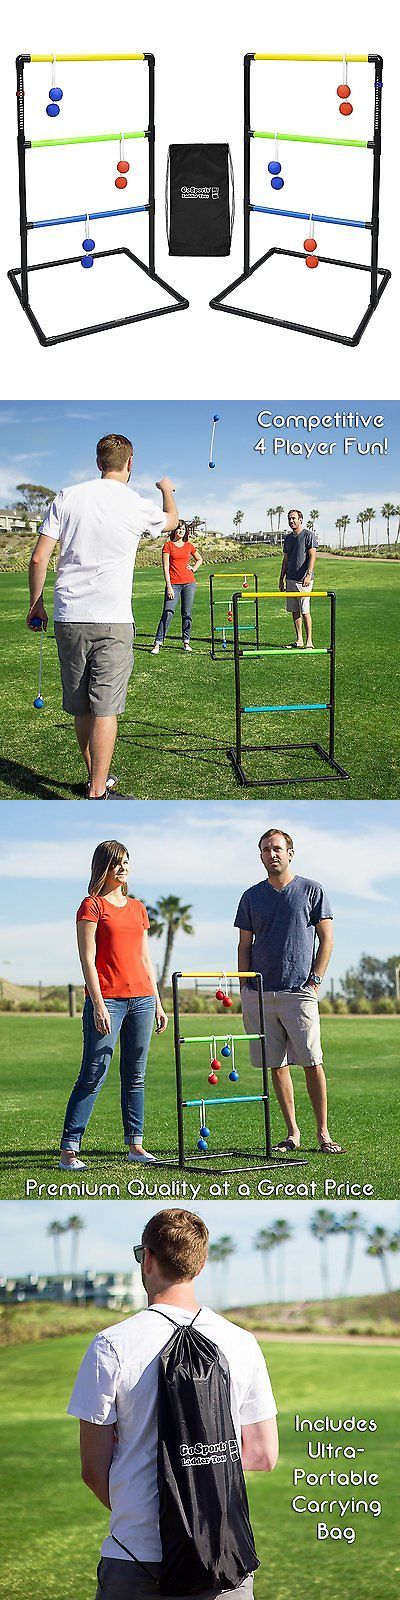 Other Backyard Games 159081: Ladder Toss Game Set Golf Backyard Family Games Adults Kids Sports Ladderball -> BUY IT NOW ONLY: $44.85 on eBay!